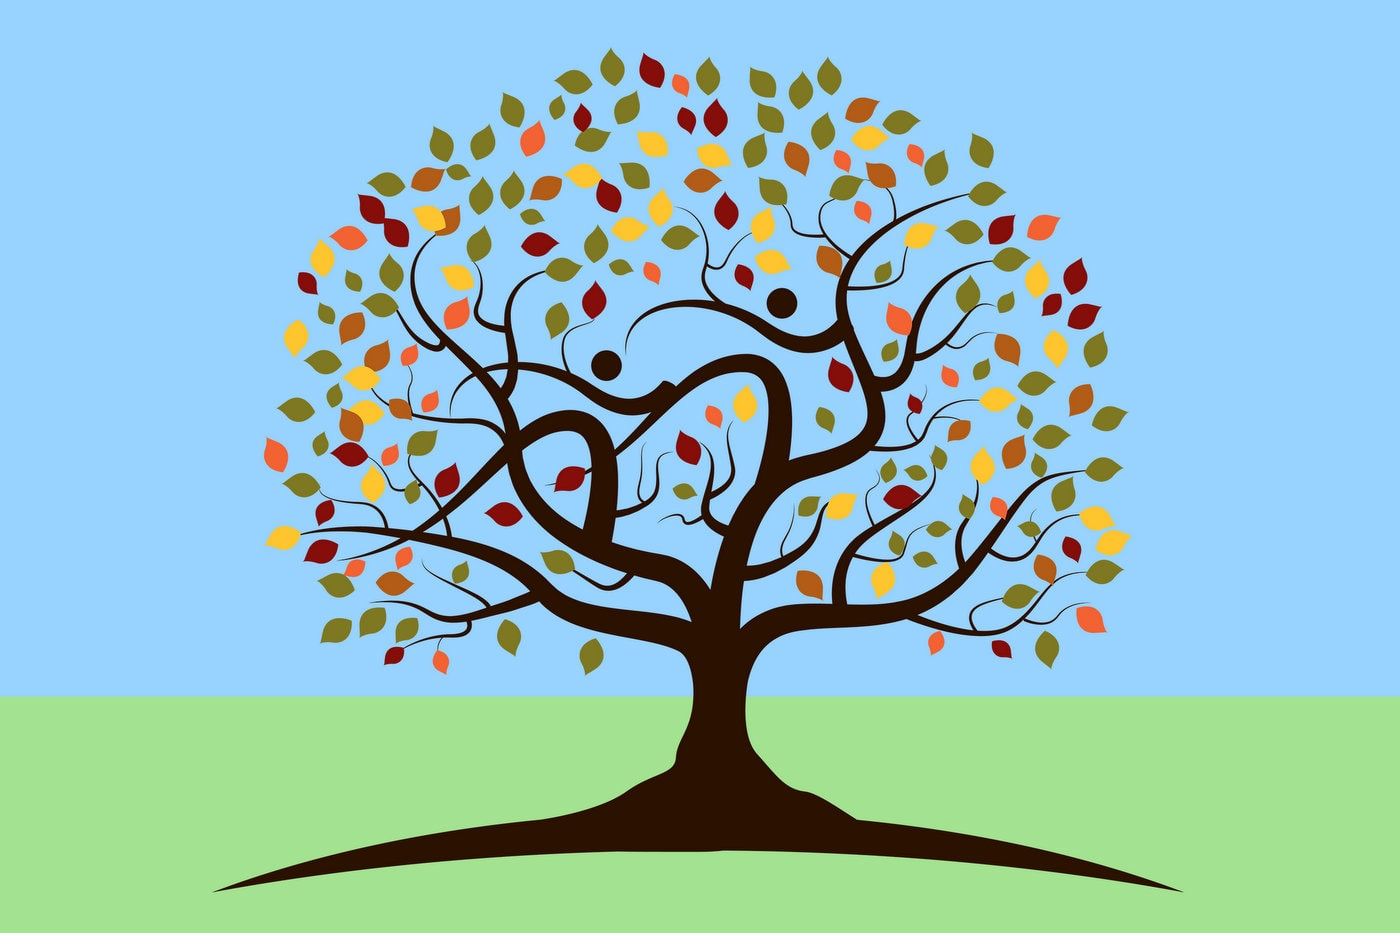 The family tree - with leaves and branches and cousins